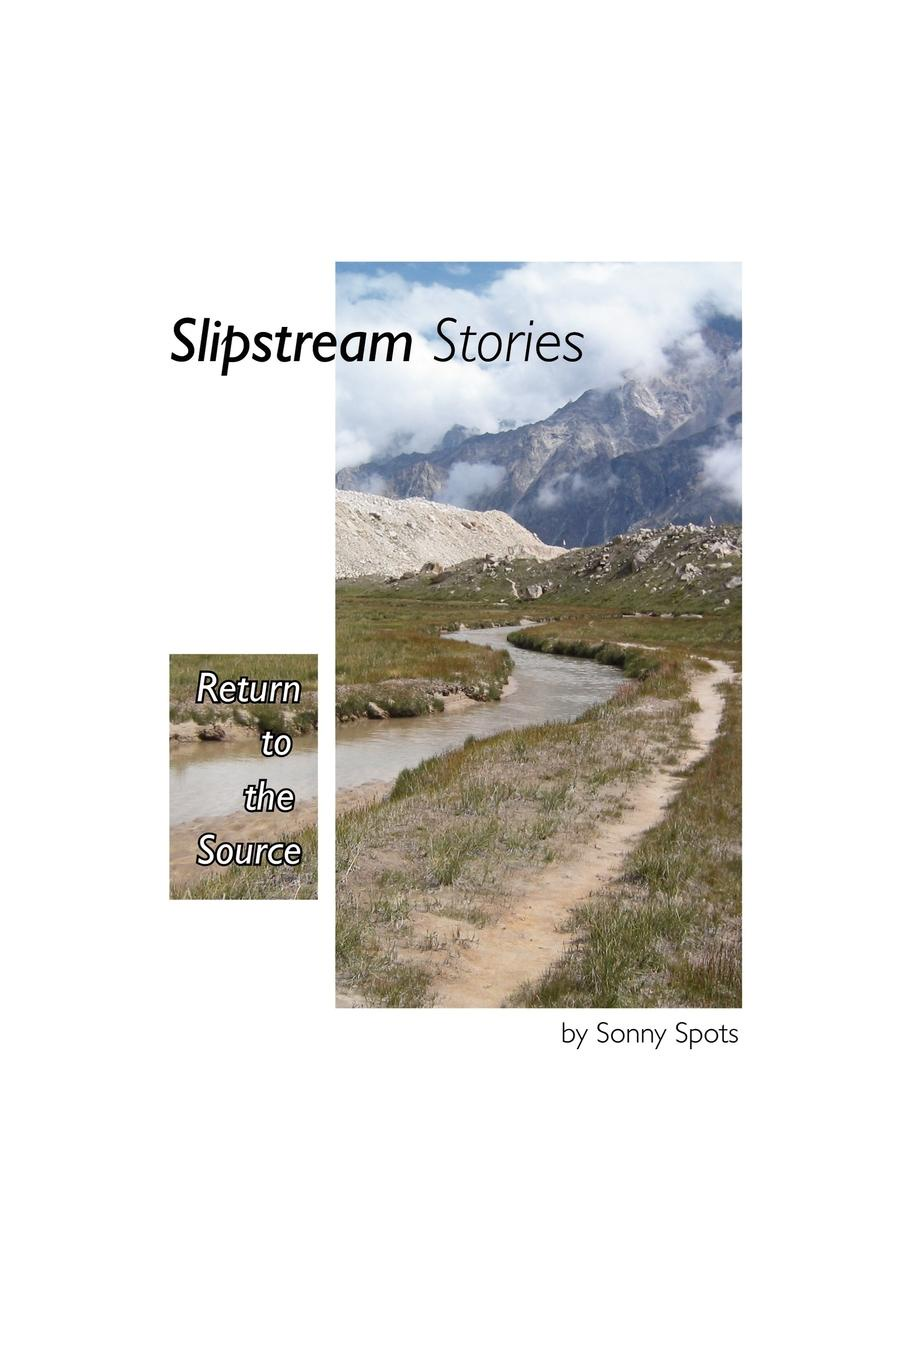 Sonny Spots Slipstream Stories, Return to the Source